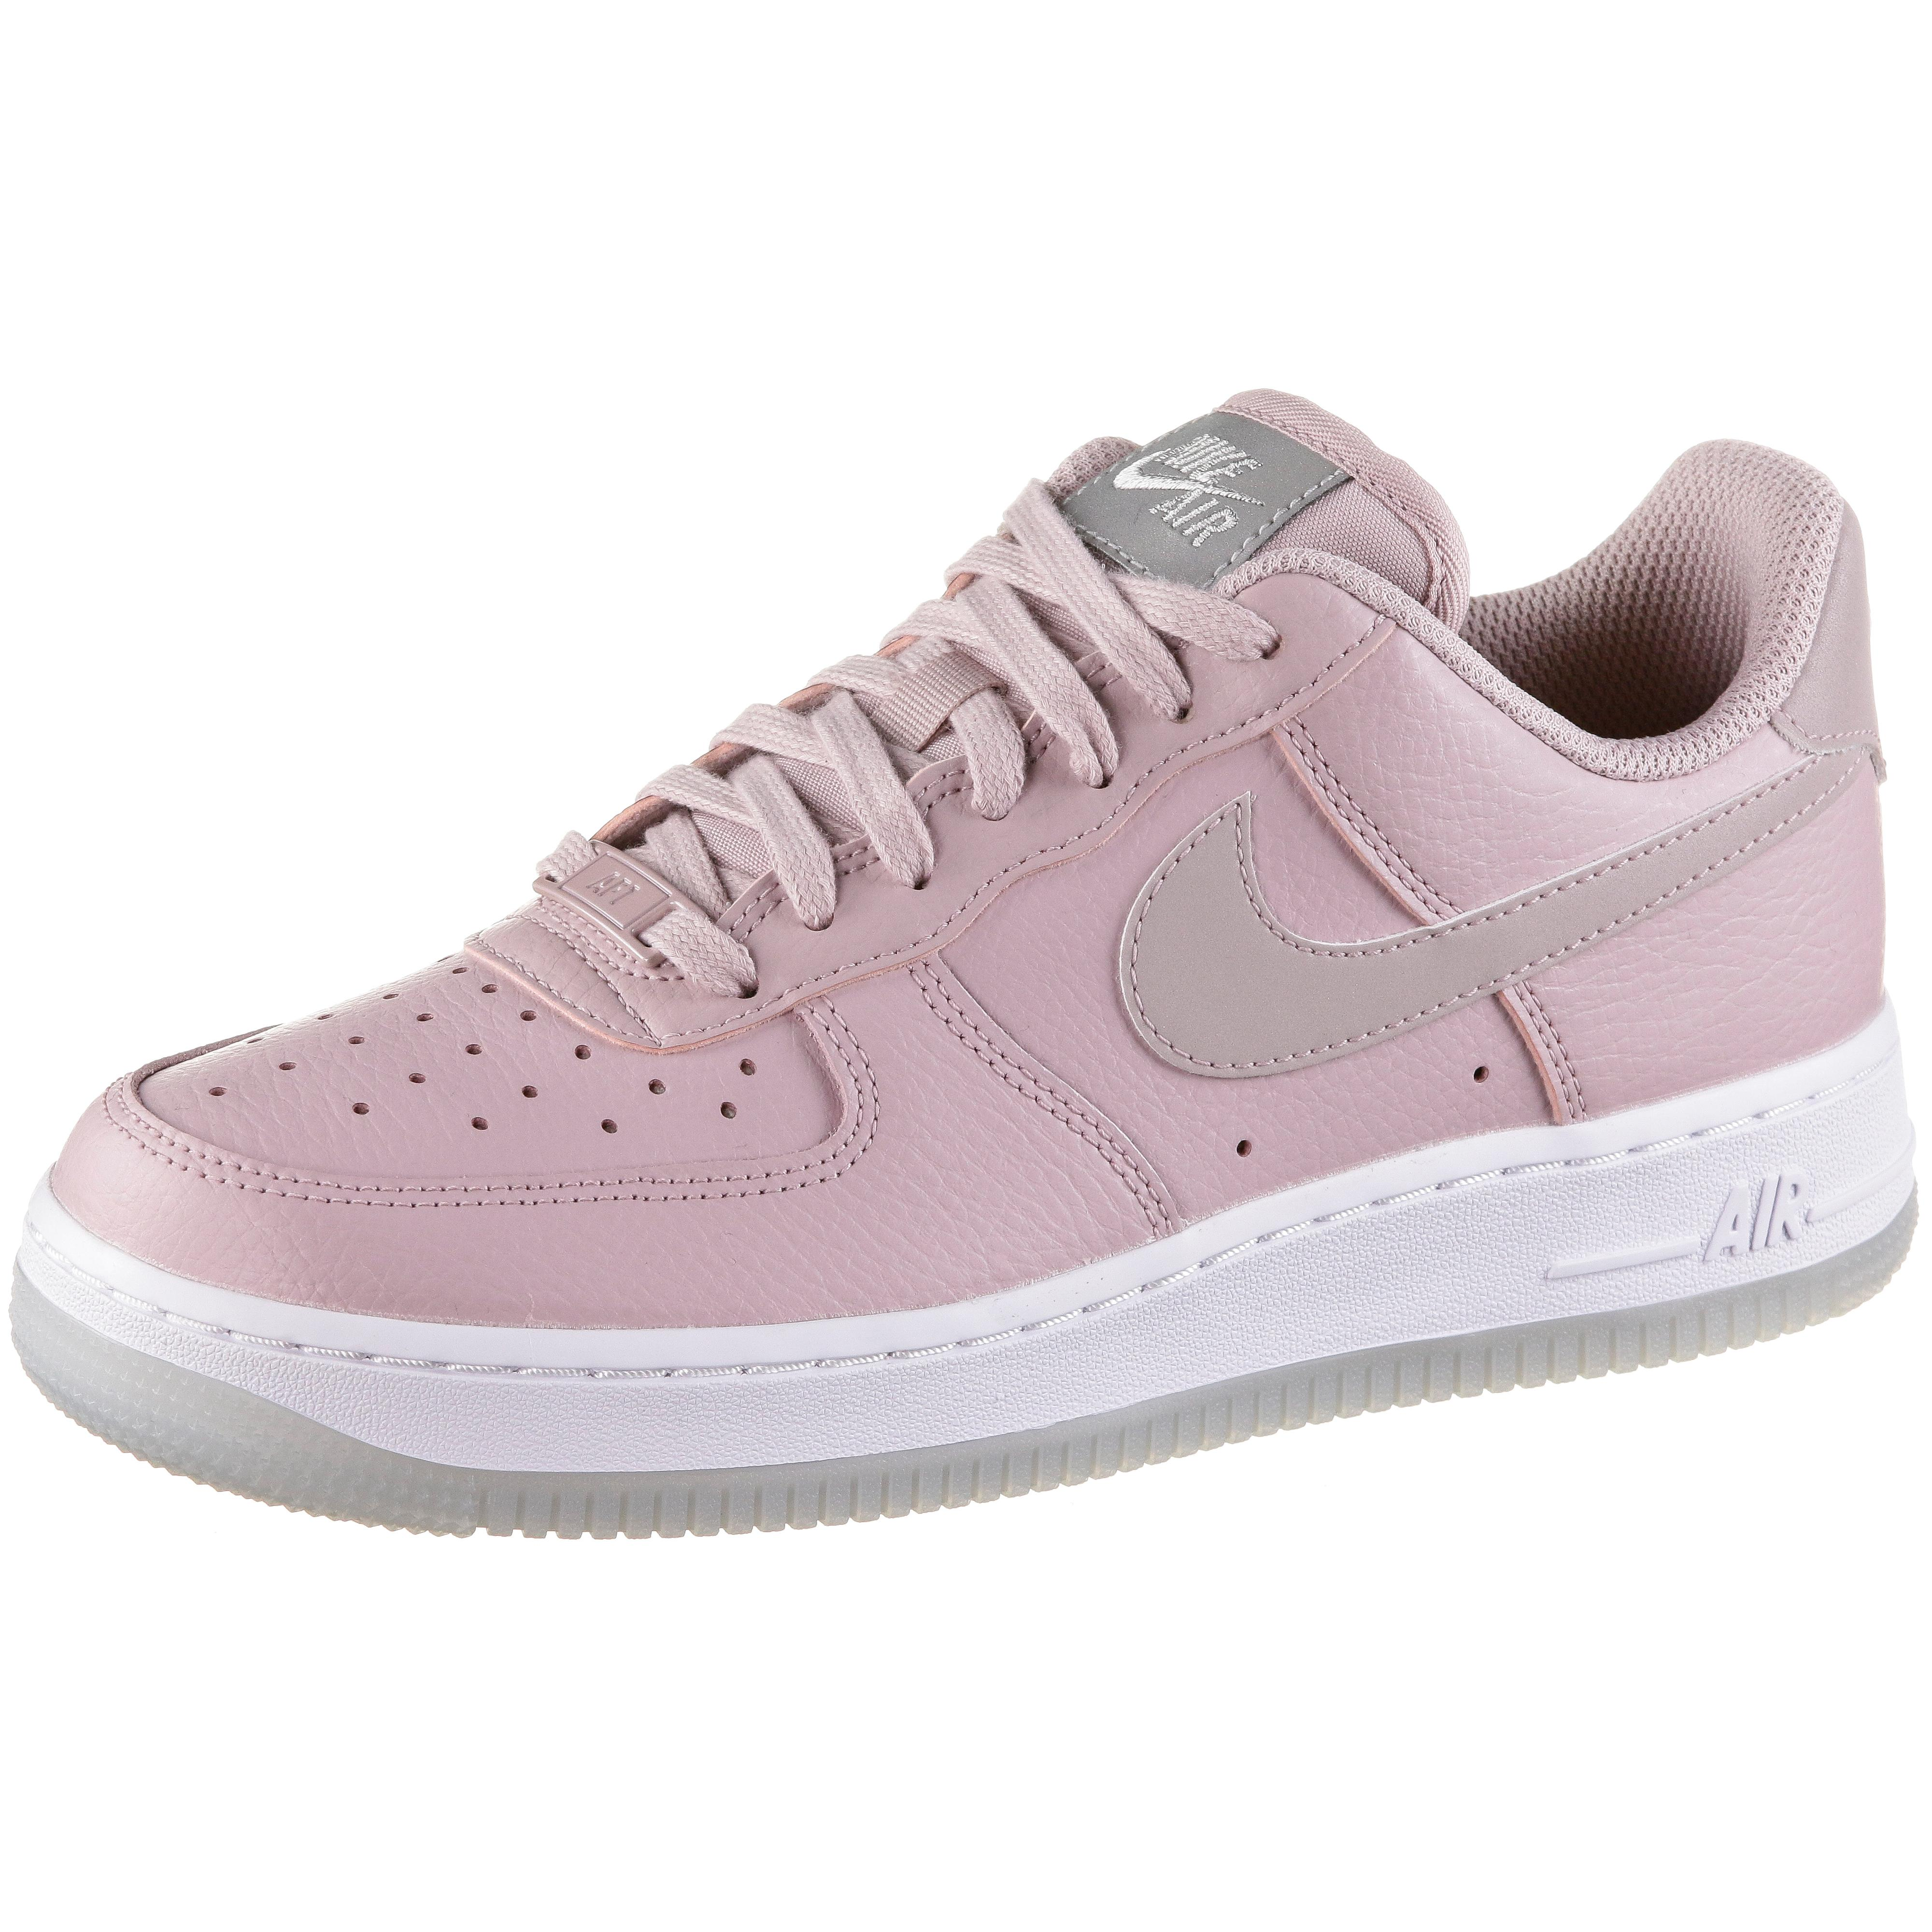 Nike Air Force 1 Plum Chalk White Shoes Best Price AO2132